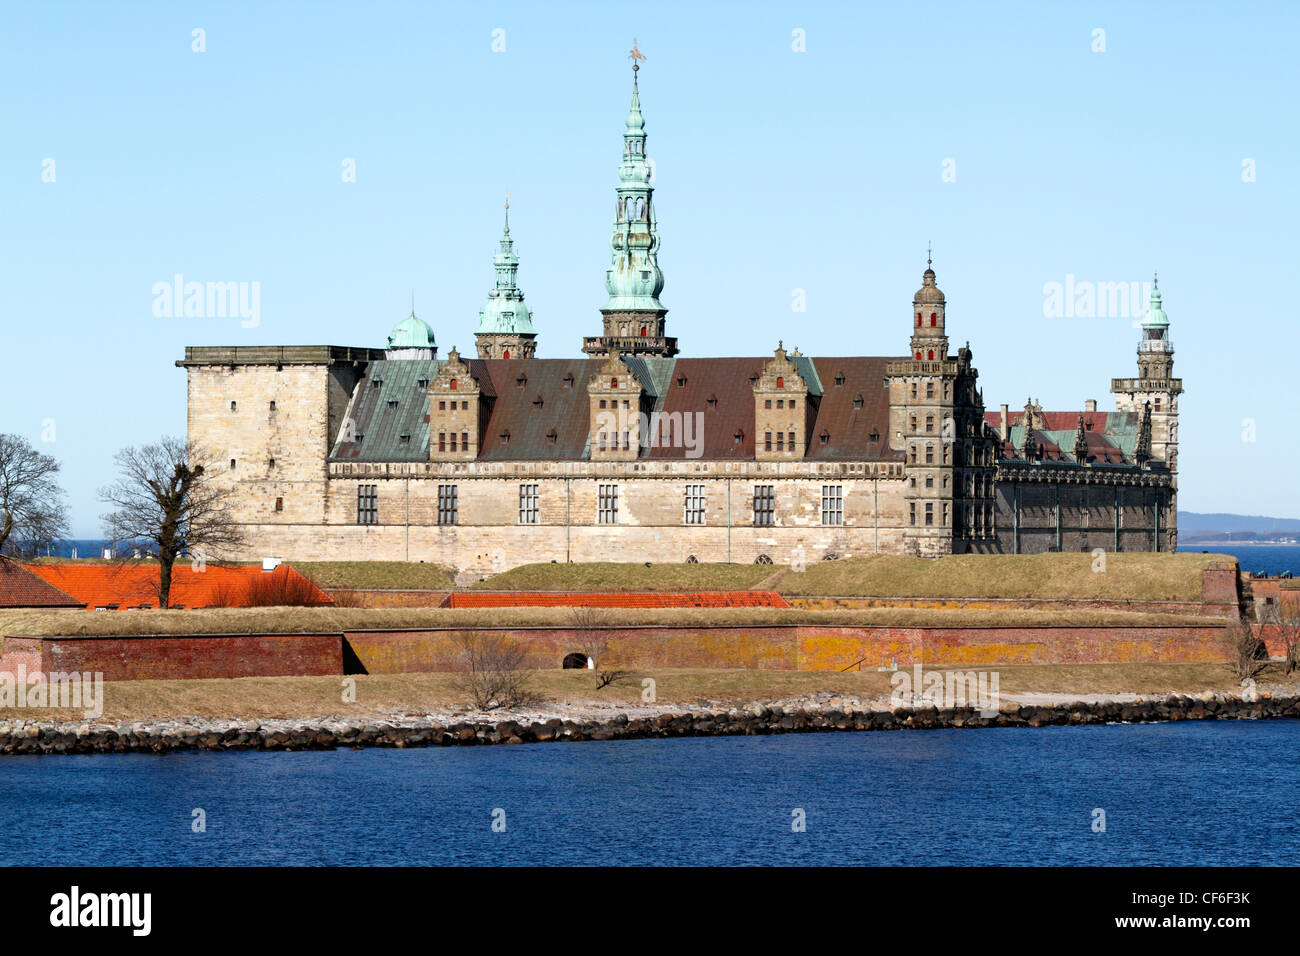 The  renaissance castle Kronborg in Elsinore (Helsingør), Denmark,  seen from the Oresund (the Sound) on a - Stock Image